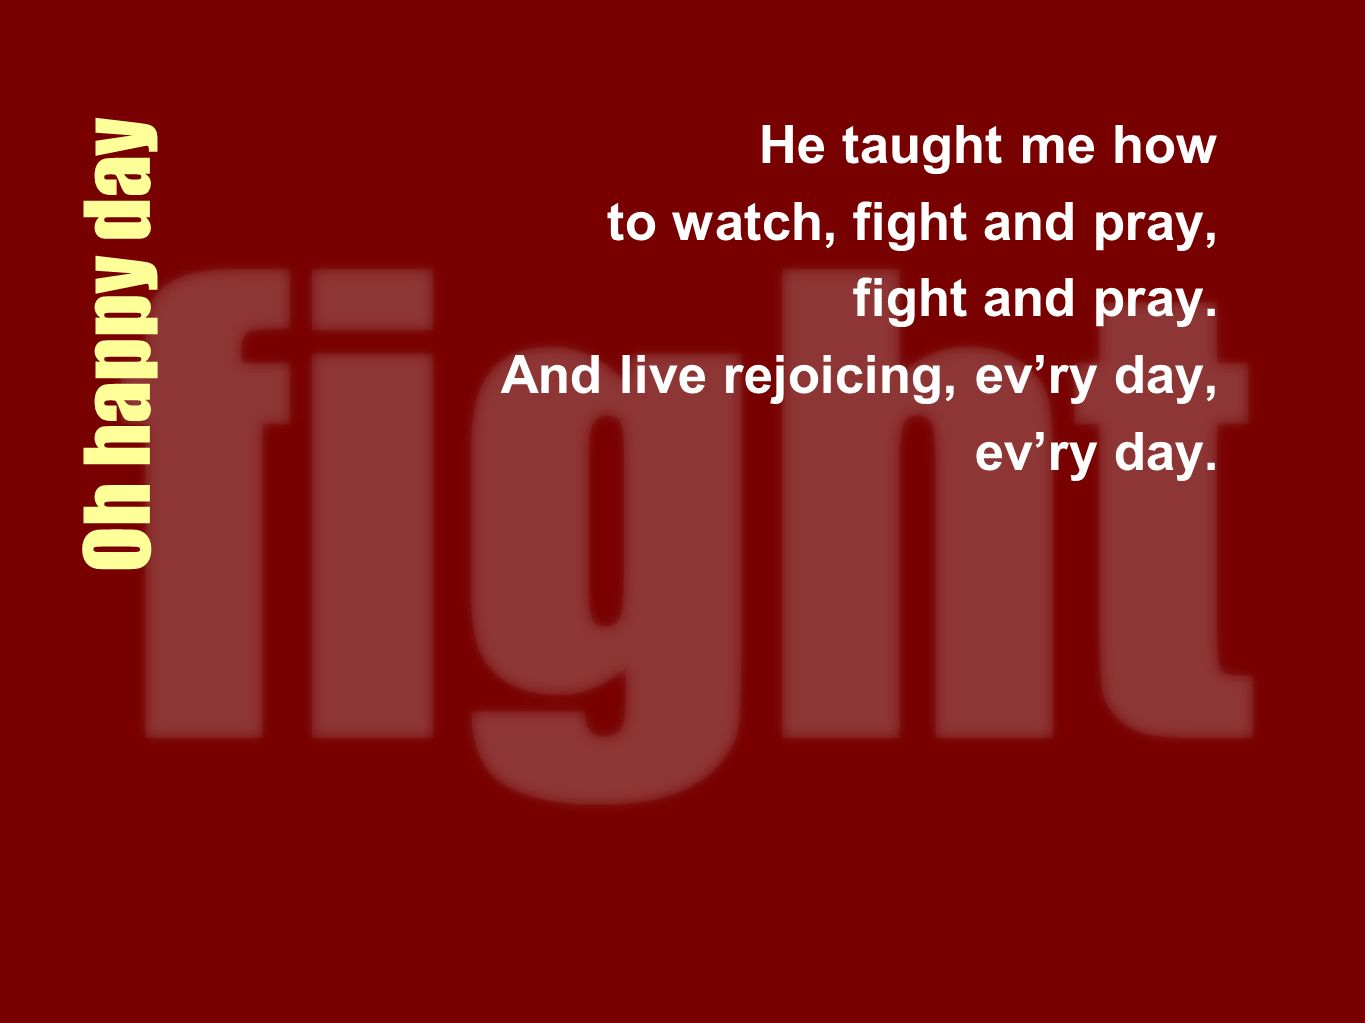 Oh happy day He taught me how to watch, fight and pray, fight and pray. And live rejoicing, evry day, evry day.